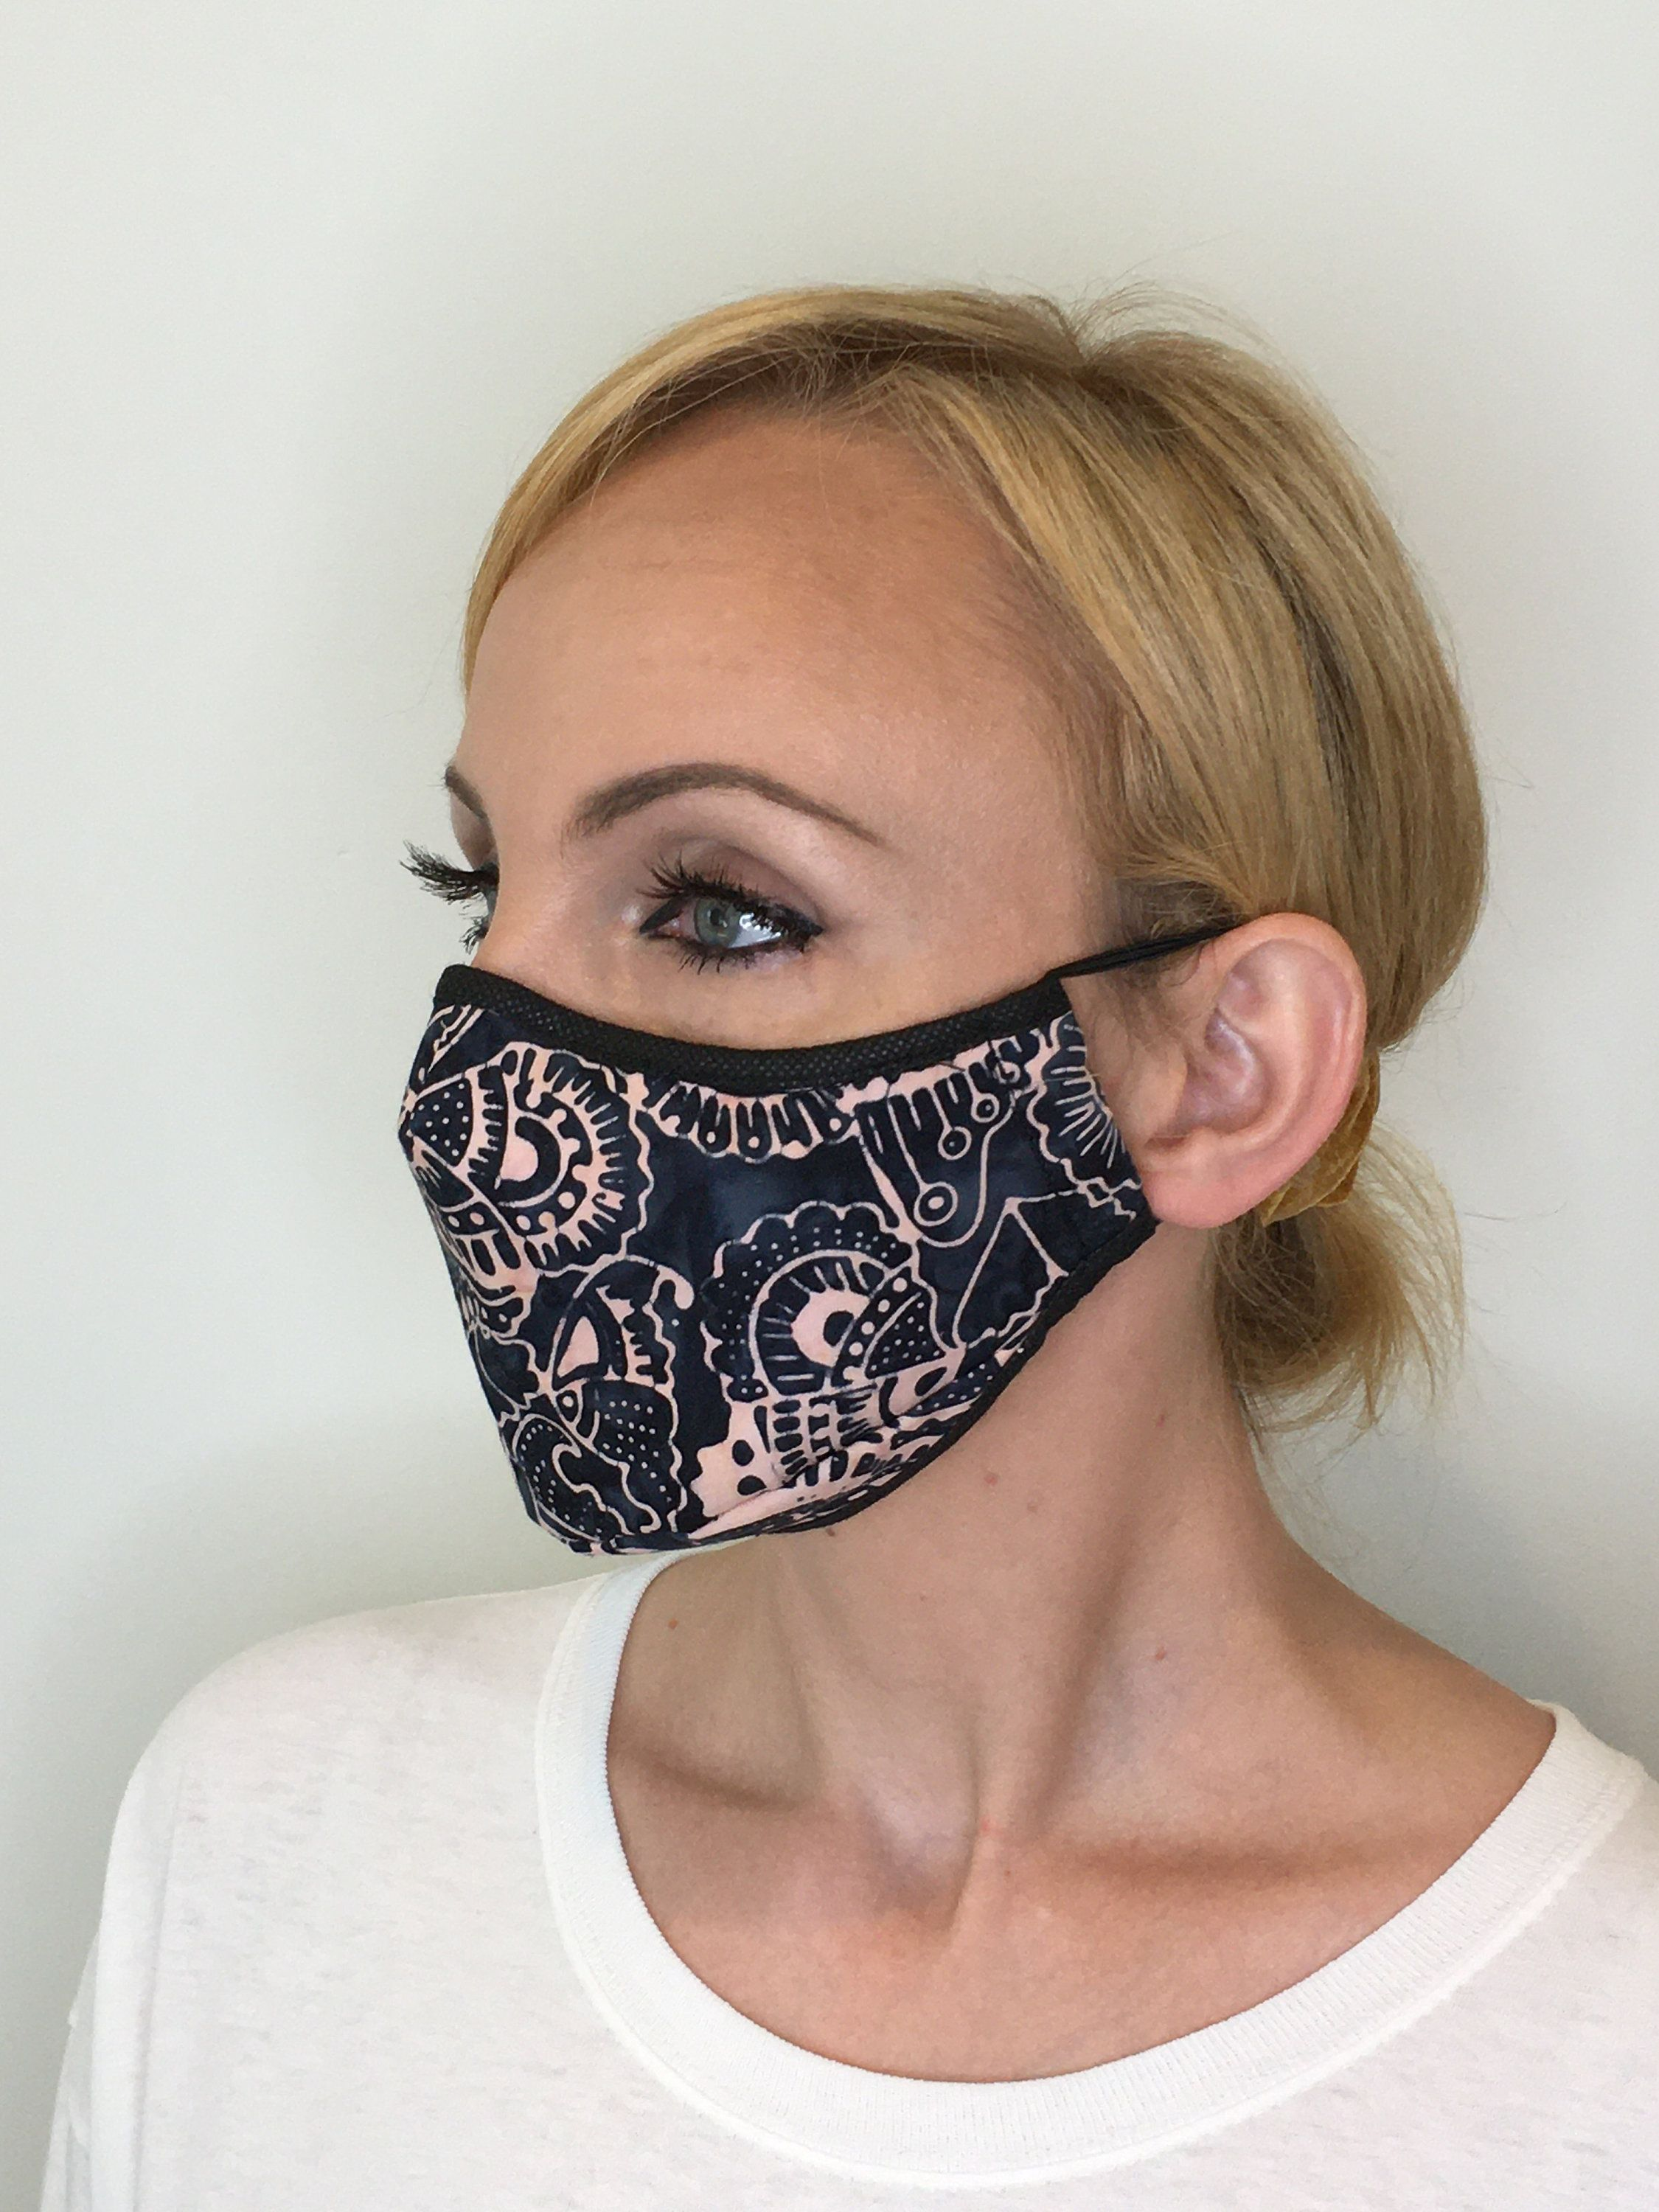 Premium Face Mask For Women Black Pink Triple Layer Etsy In 2020 Fashion Face Mask Diy Face Mask Mask